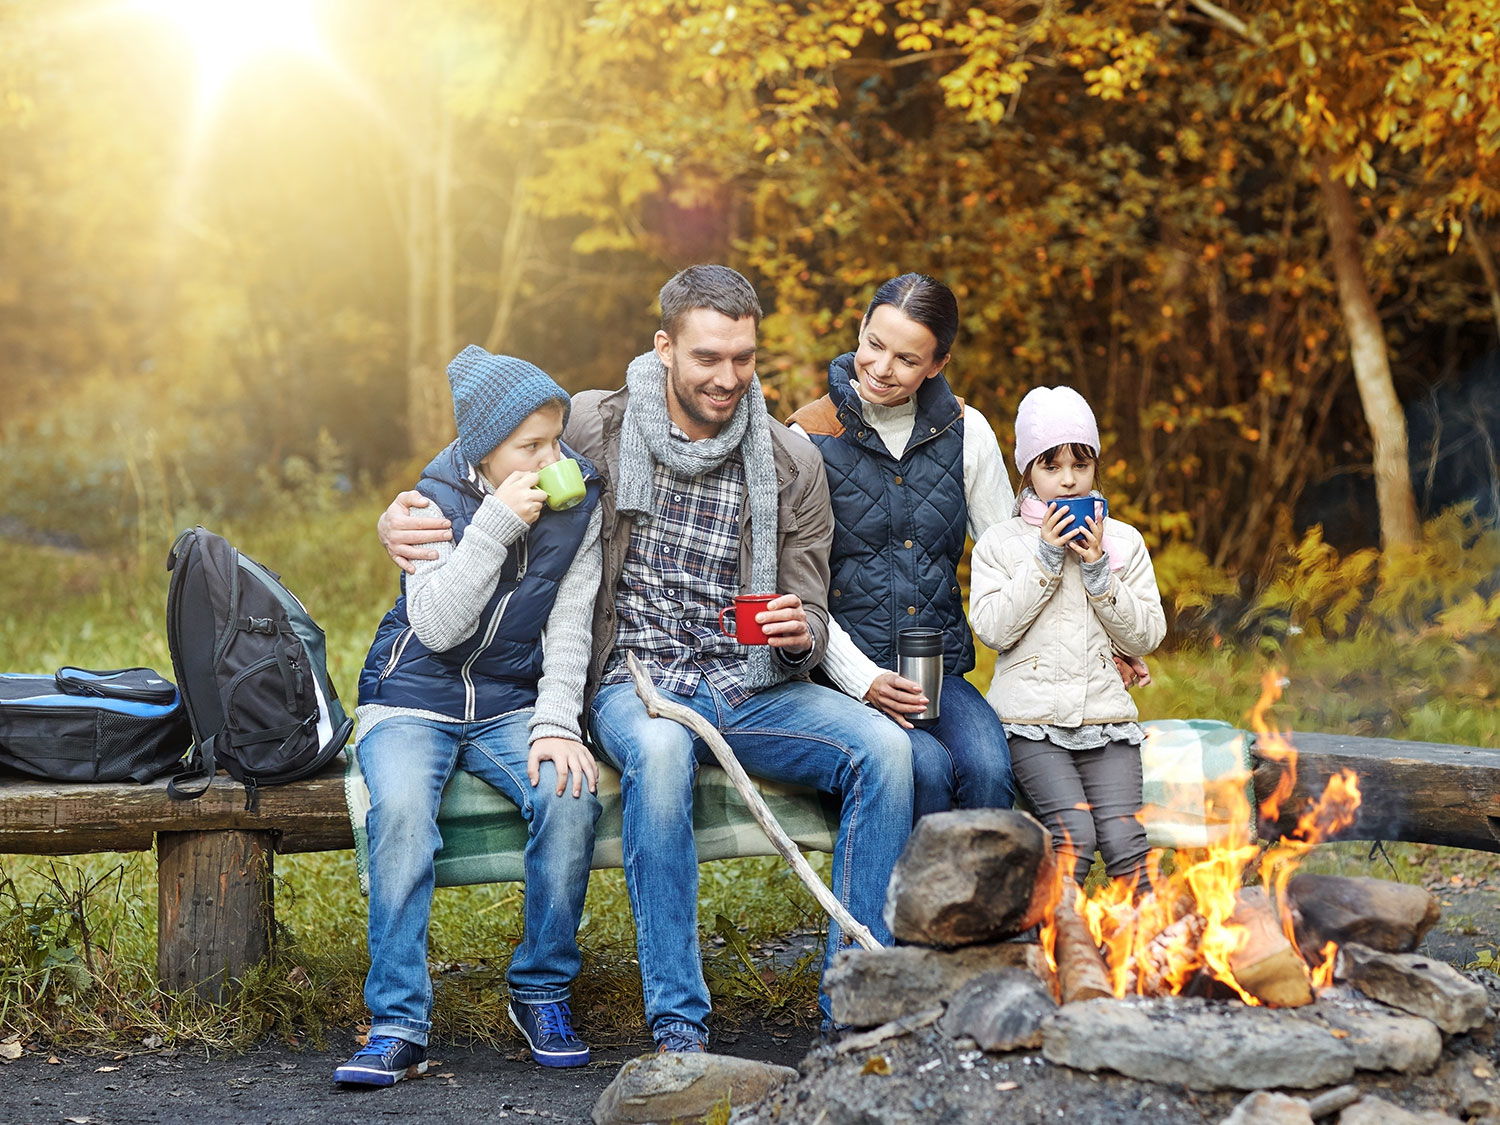 8-campfire-games-whole-family-article-4-3.jpg